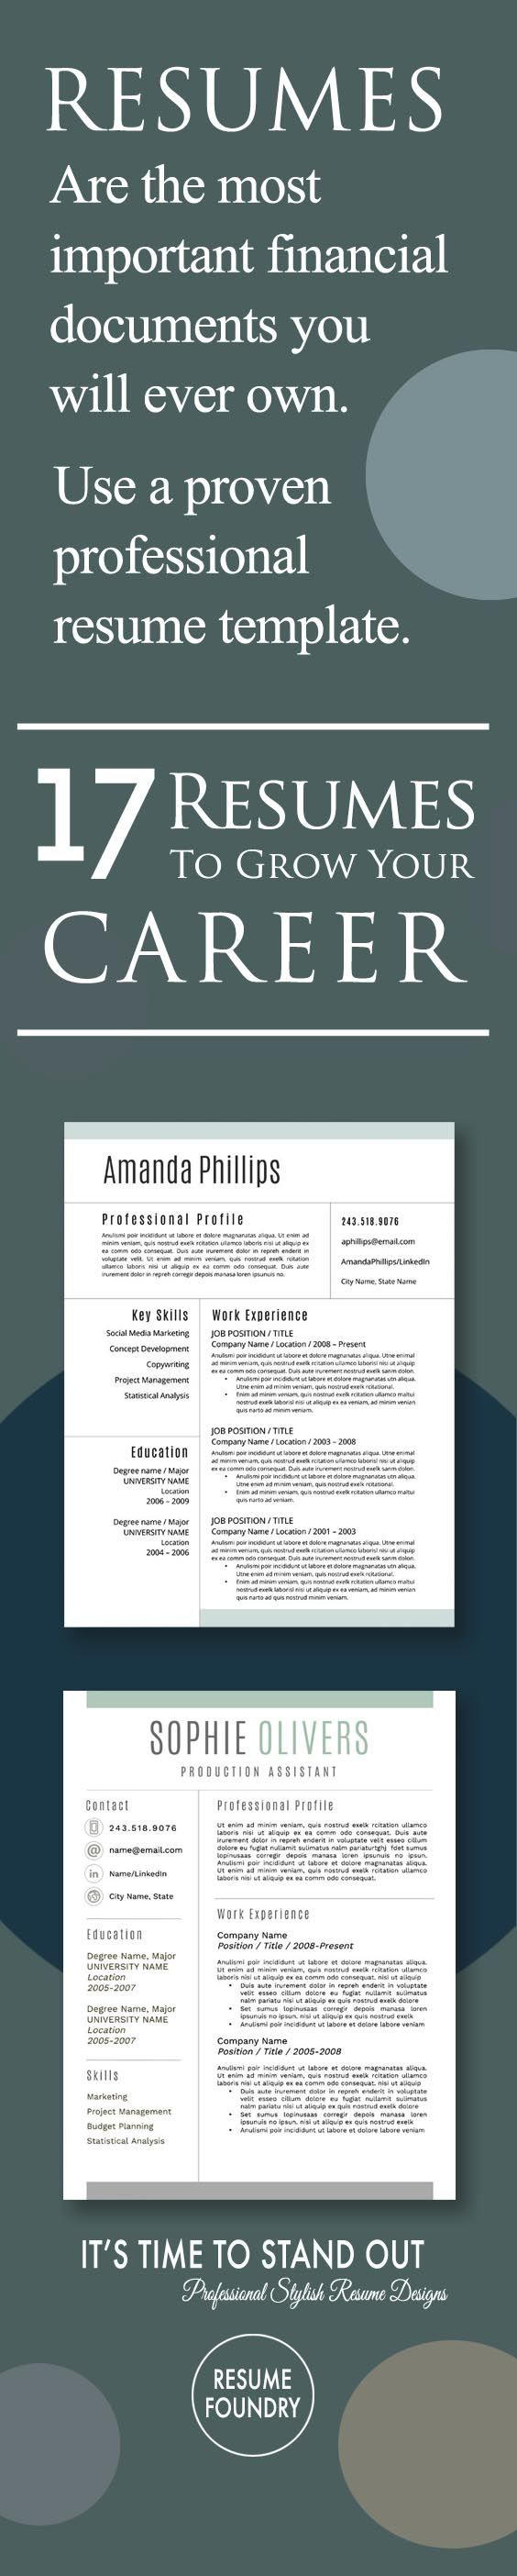 Resumes are the most important financial documents you will ever own. Use a proven professional resume template. Resume Foundry.